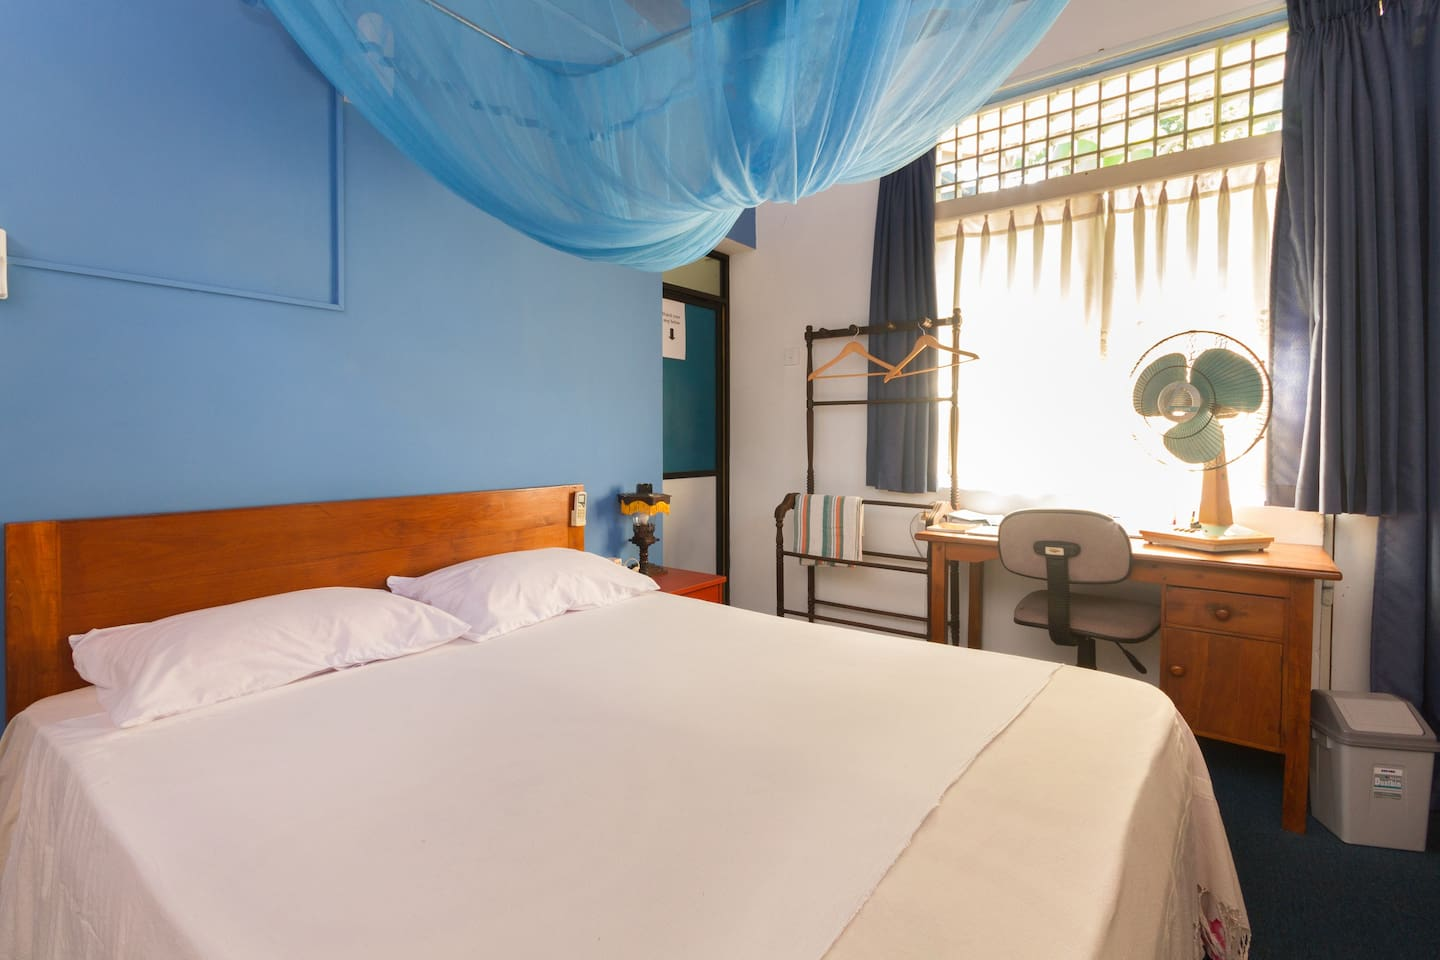 Sleep quality Guaranteed Comfortable Double bed with A/C optional at additional 4 usd